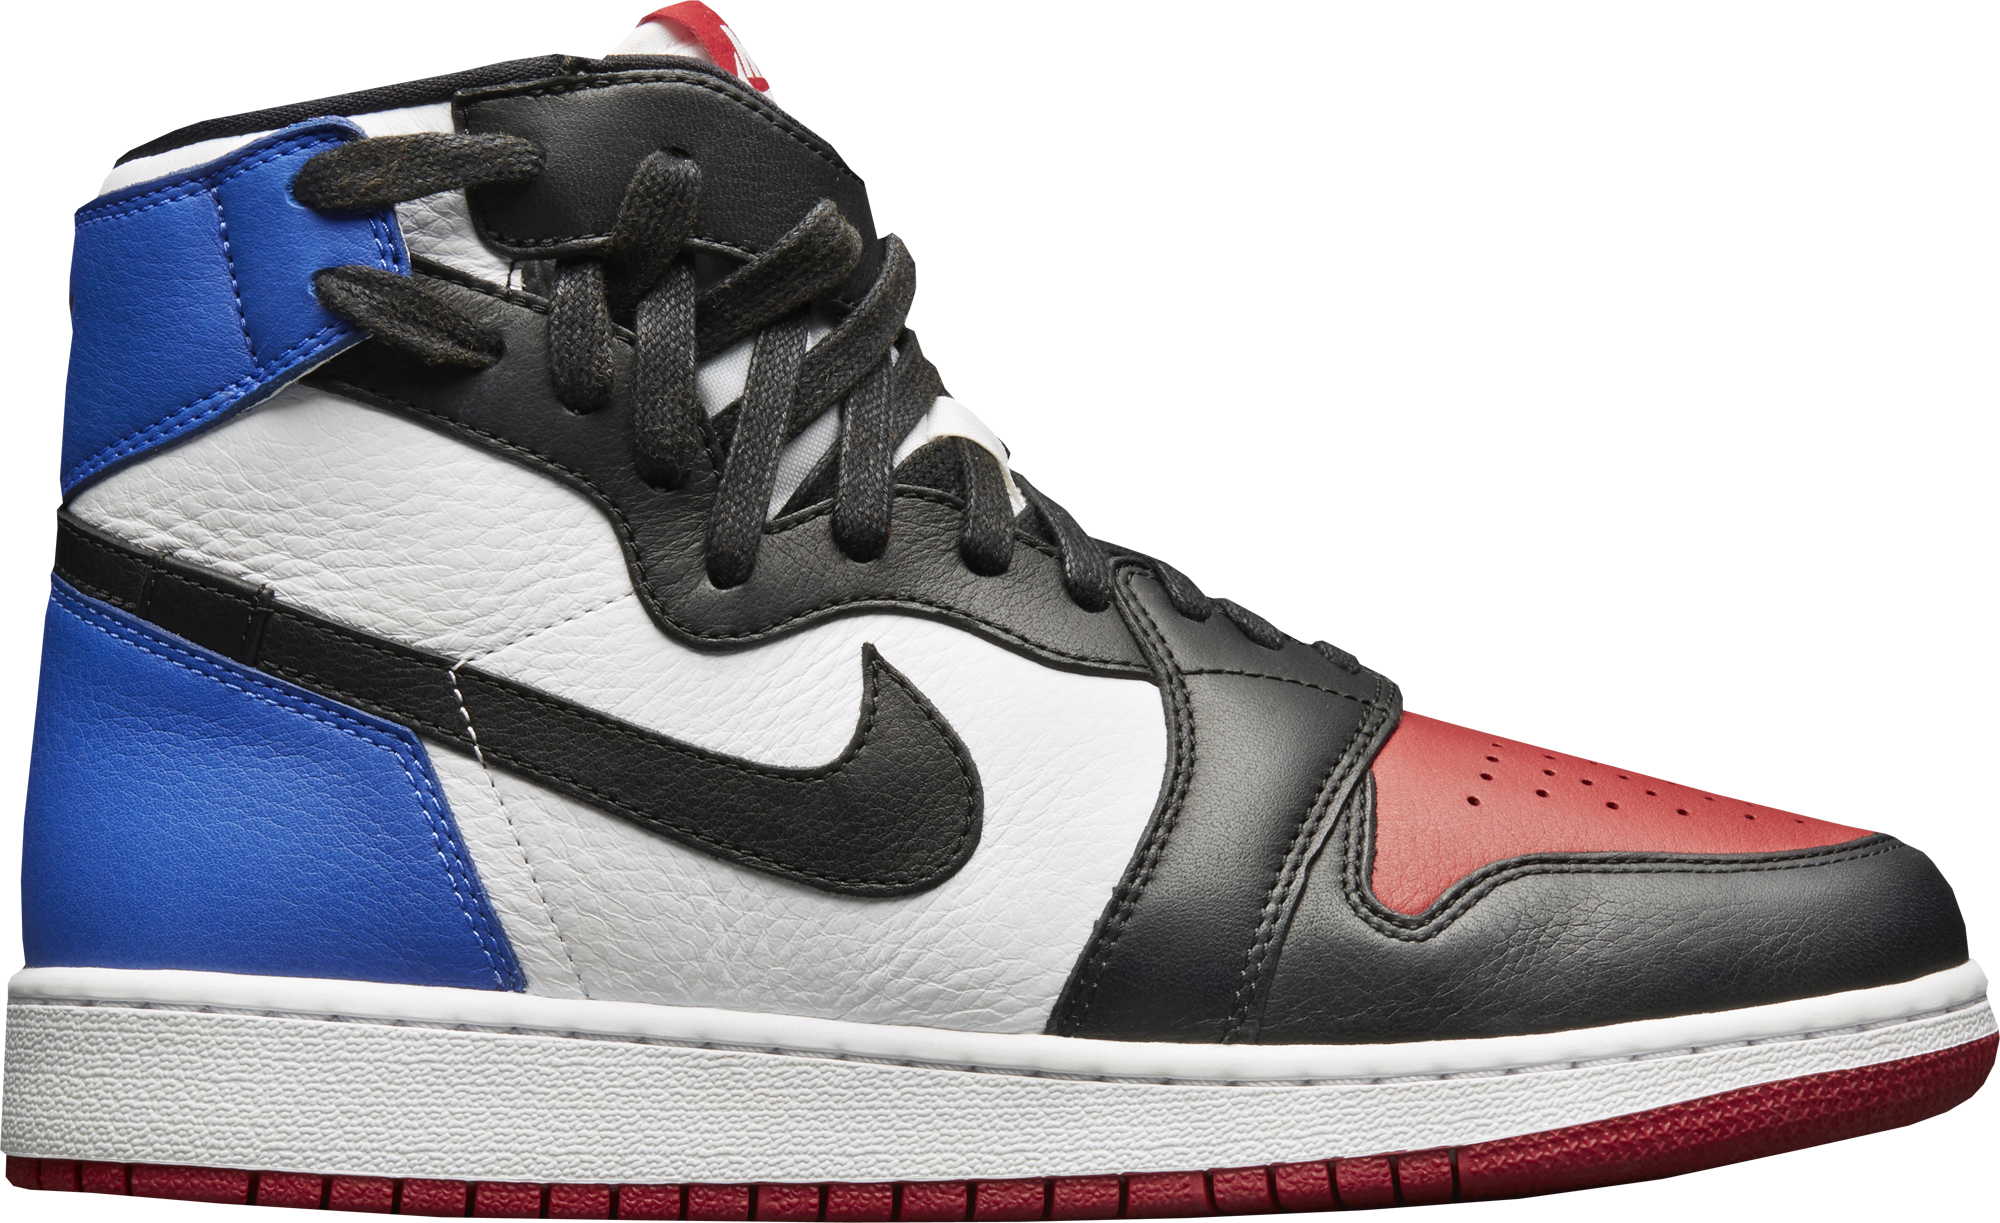 detailed look 39cd6 17ce6 Women's Air Jordan 1 Rebel Top 3